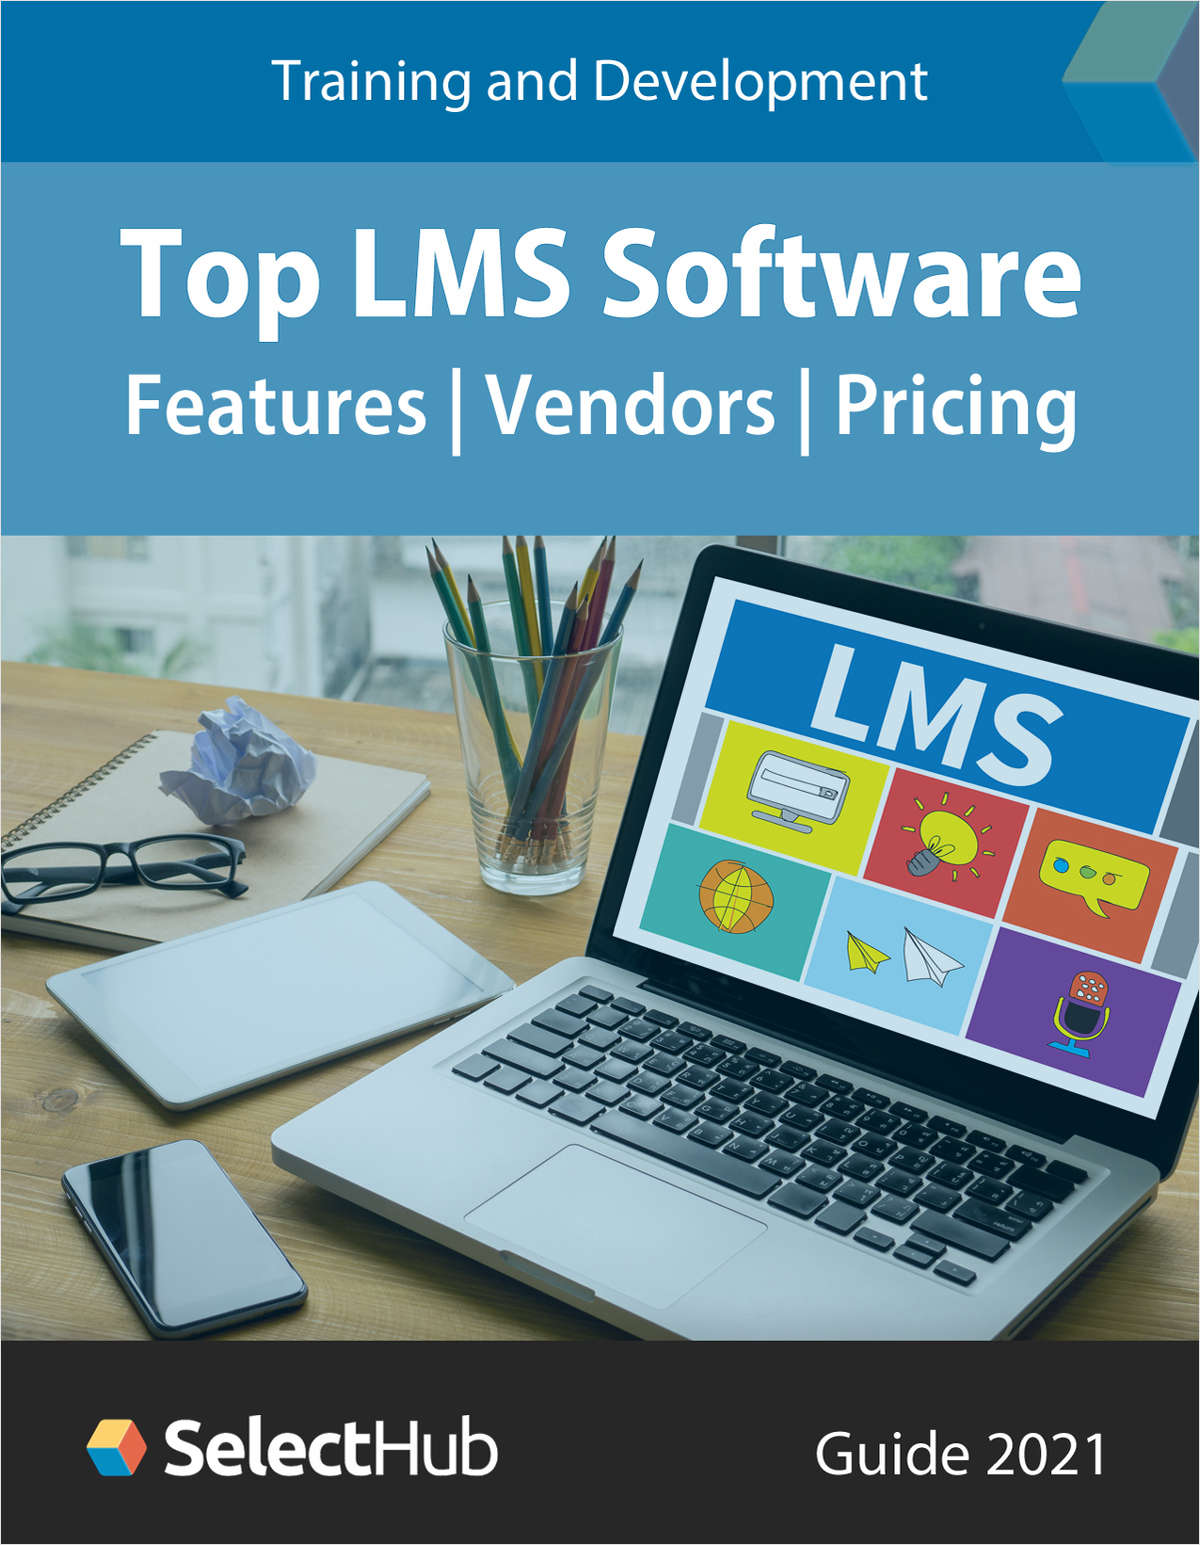 Top LMS Software Features, Vendors & Pricing 2021